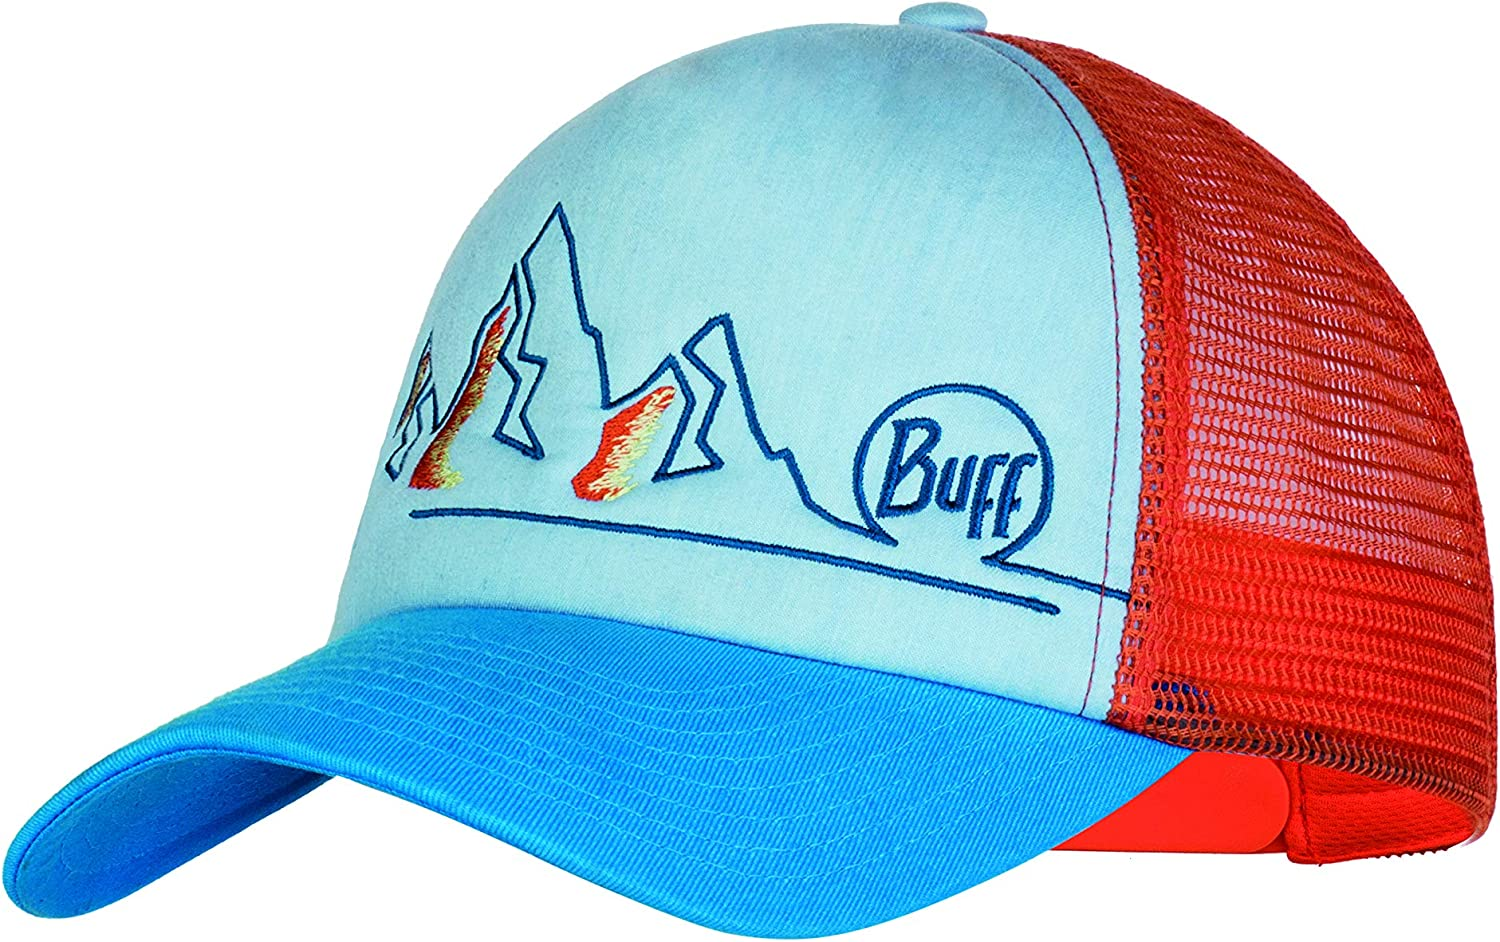 Buff Loess Gorra Trucker, Hombre, Multicolor, Talla única: Amazon ...